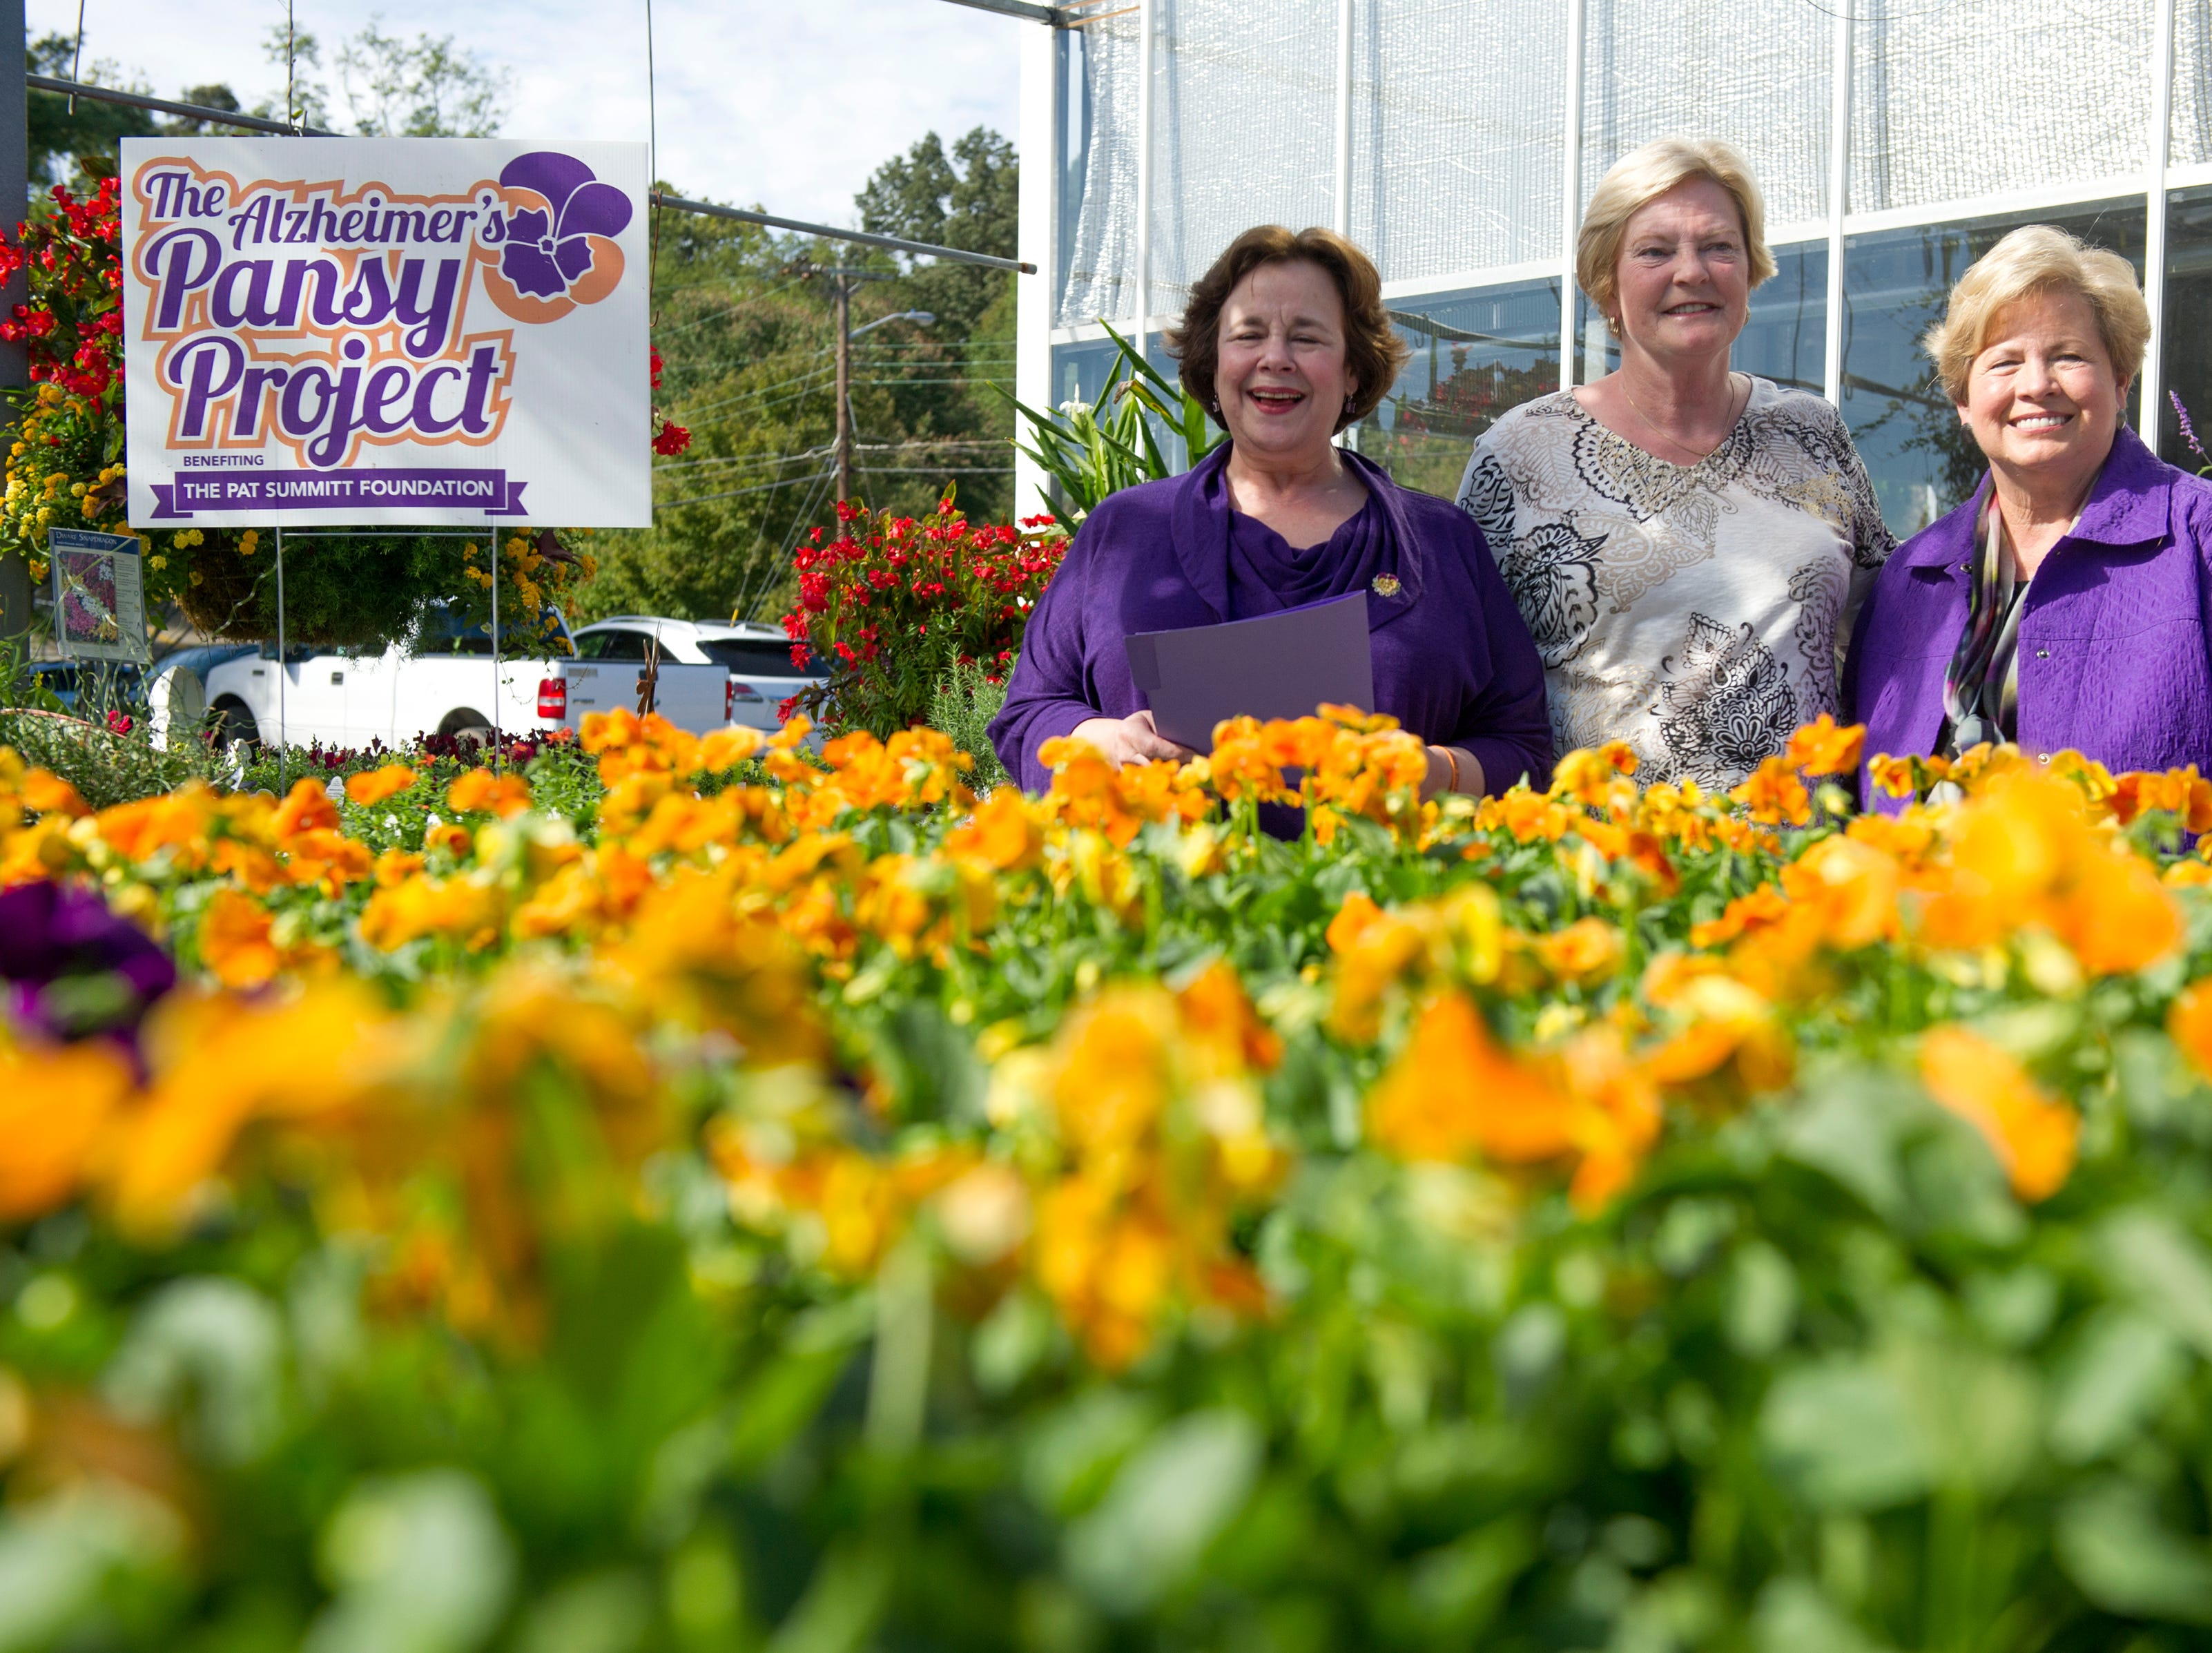 Former University of Tennessee basketball coach Pat Summitt (center) helps introduce during the kick-off of The Pat Summitt Foundation's fourth annual Alzheimer's Pansy Project with Susie Stiles (left) and University of Tennessee women's athletic director emeritus Joan Cronan (right) at Stanley's Greenhouse and Plant Farm Tuesday, Oct. 6, 2015. The project donates  seven dollars for every flat that is sold and intends to decorate Knoxville with purple and orange pansies in support for those with Alzheimers.